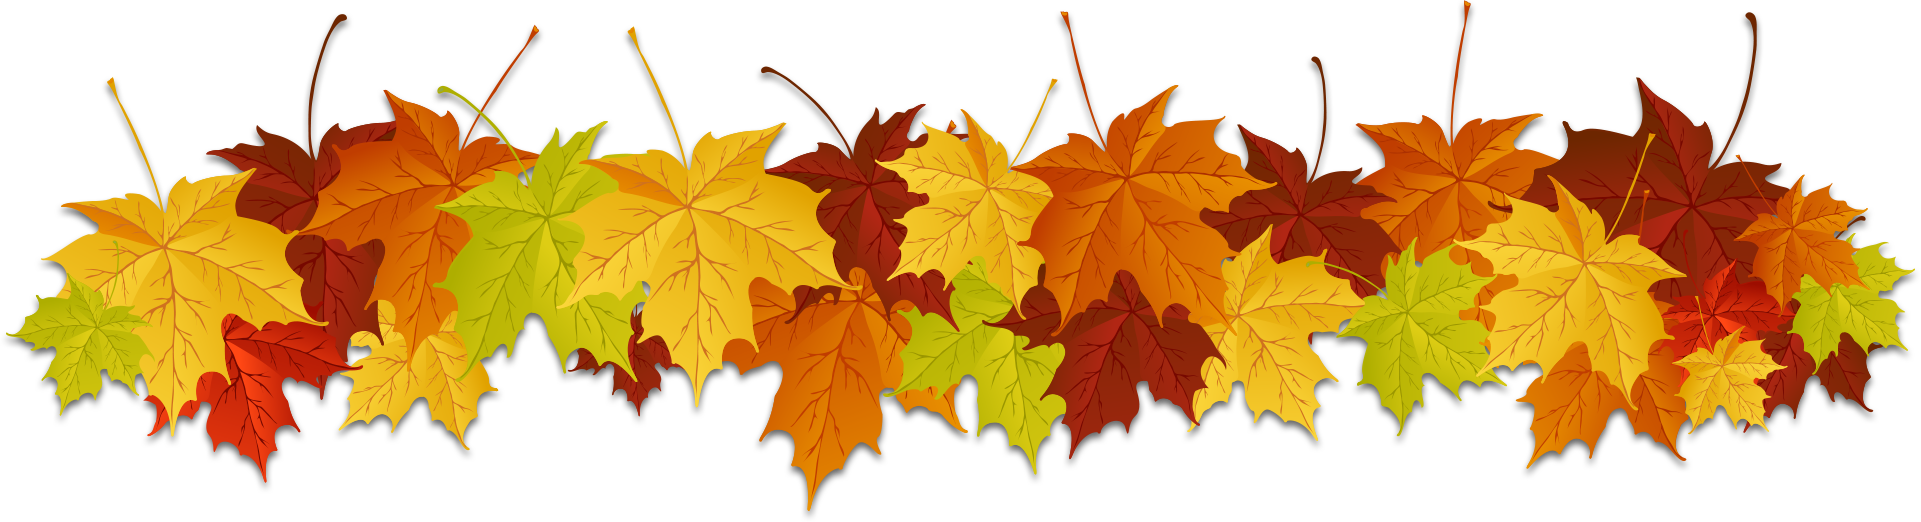 Leaves-top-border.png